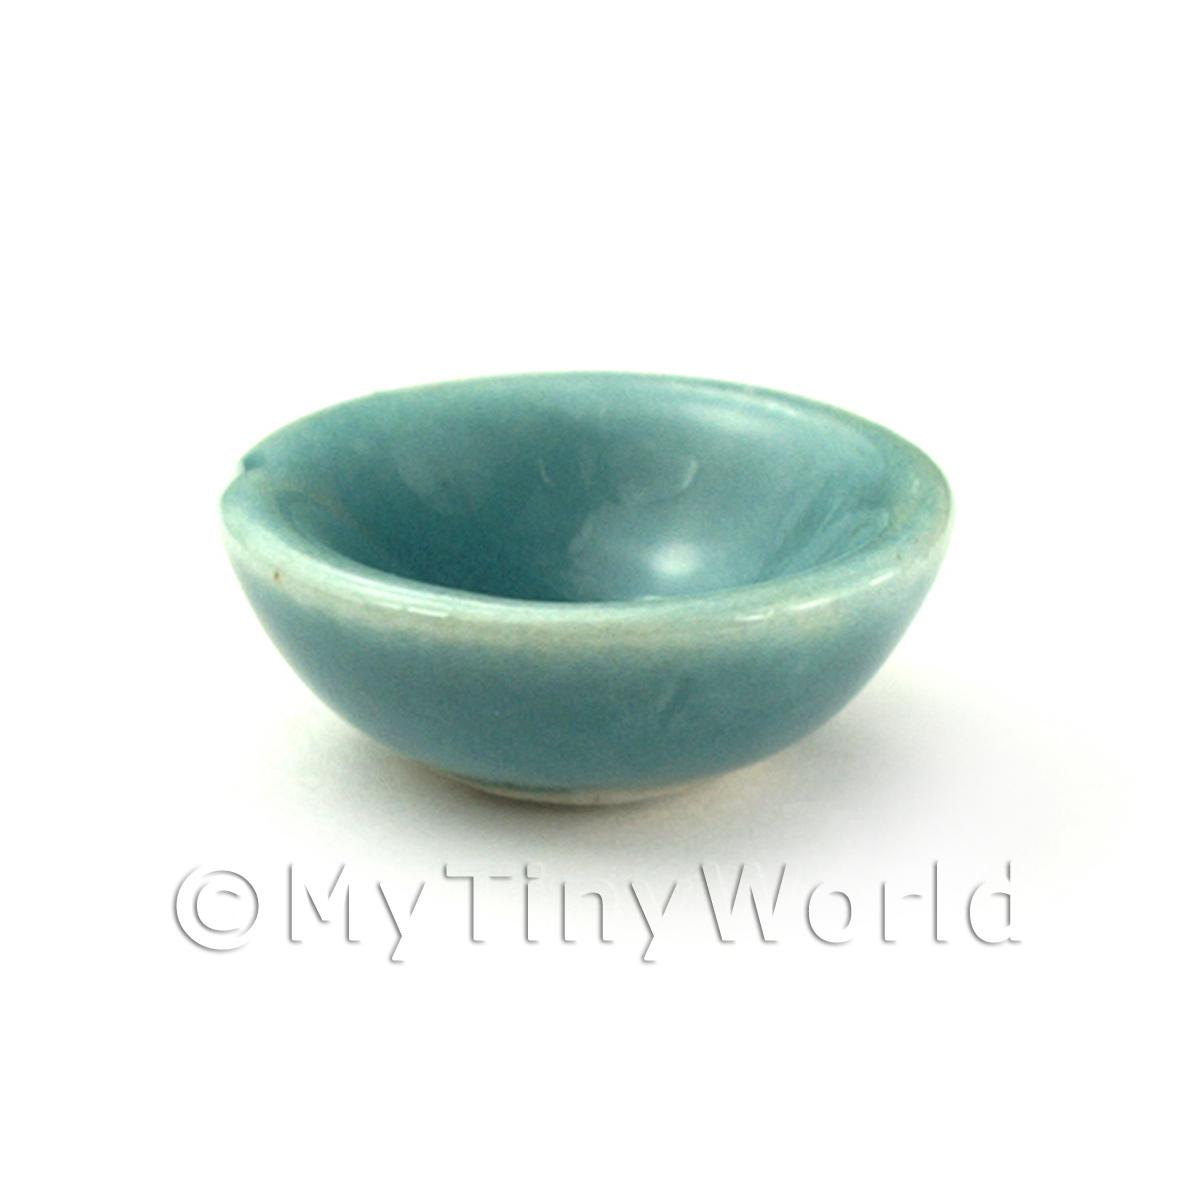 Dolls House Miniature Aquamarine 15mm Ceramic Bowl